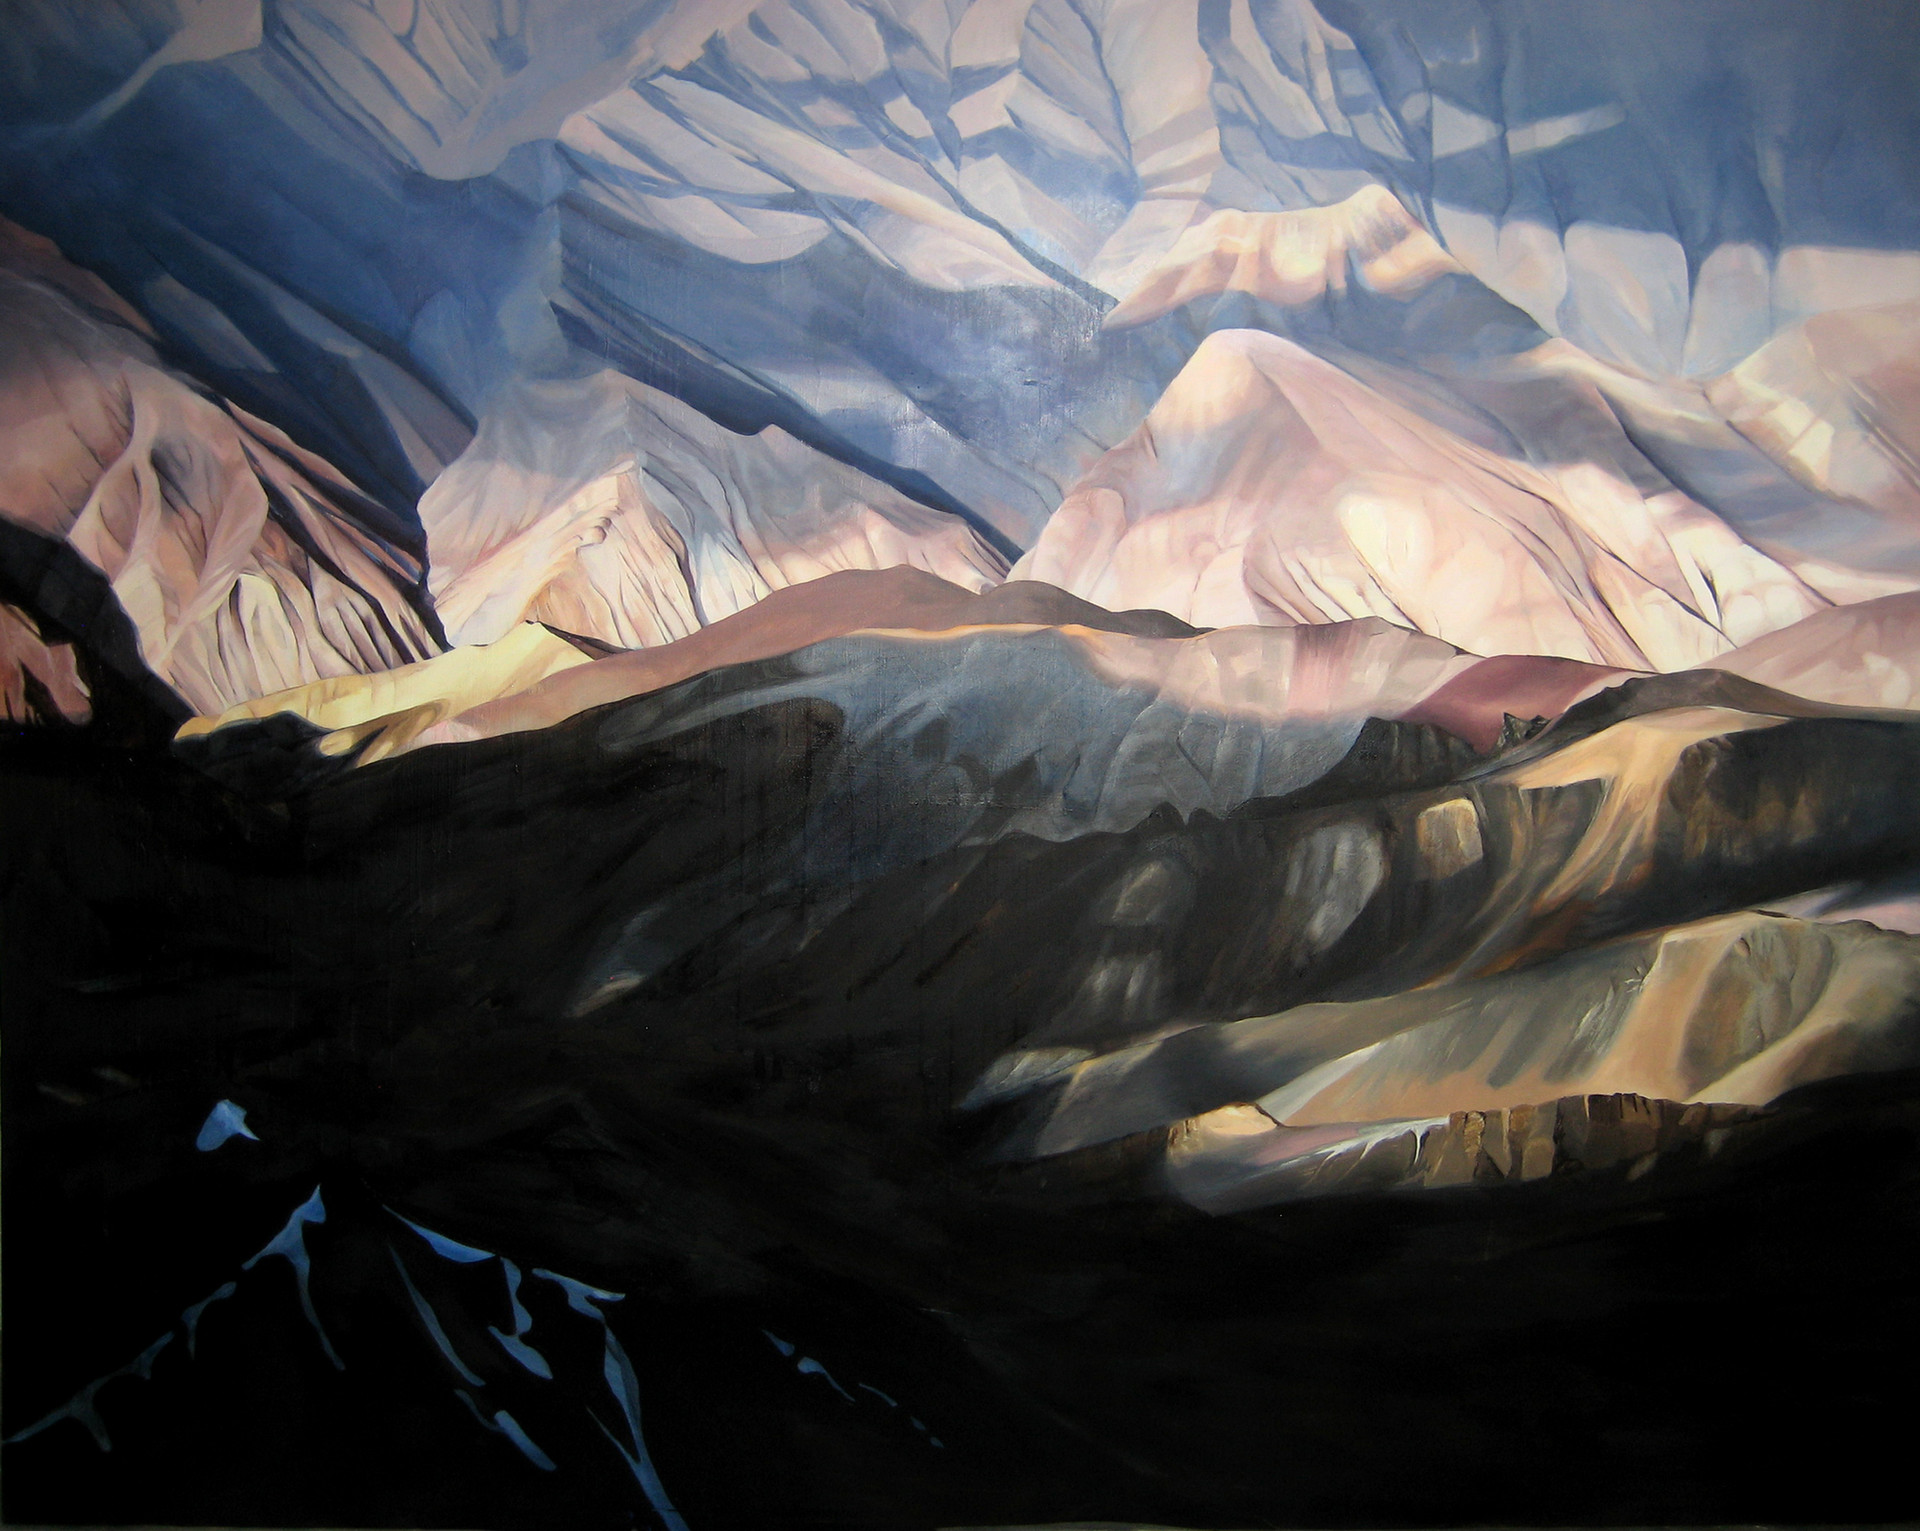 Kashmir 6000m, Oil on canvas, 72x60 inches